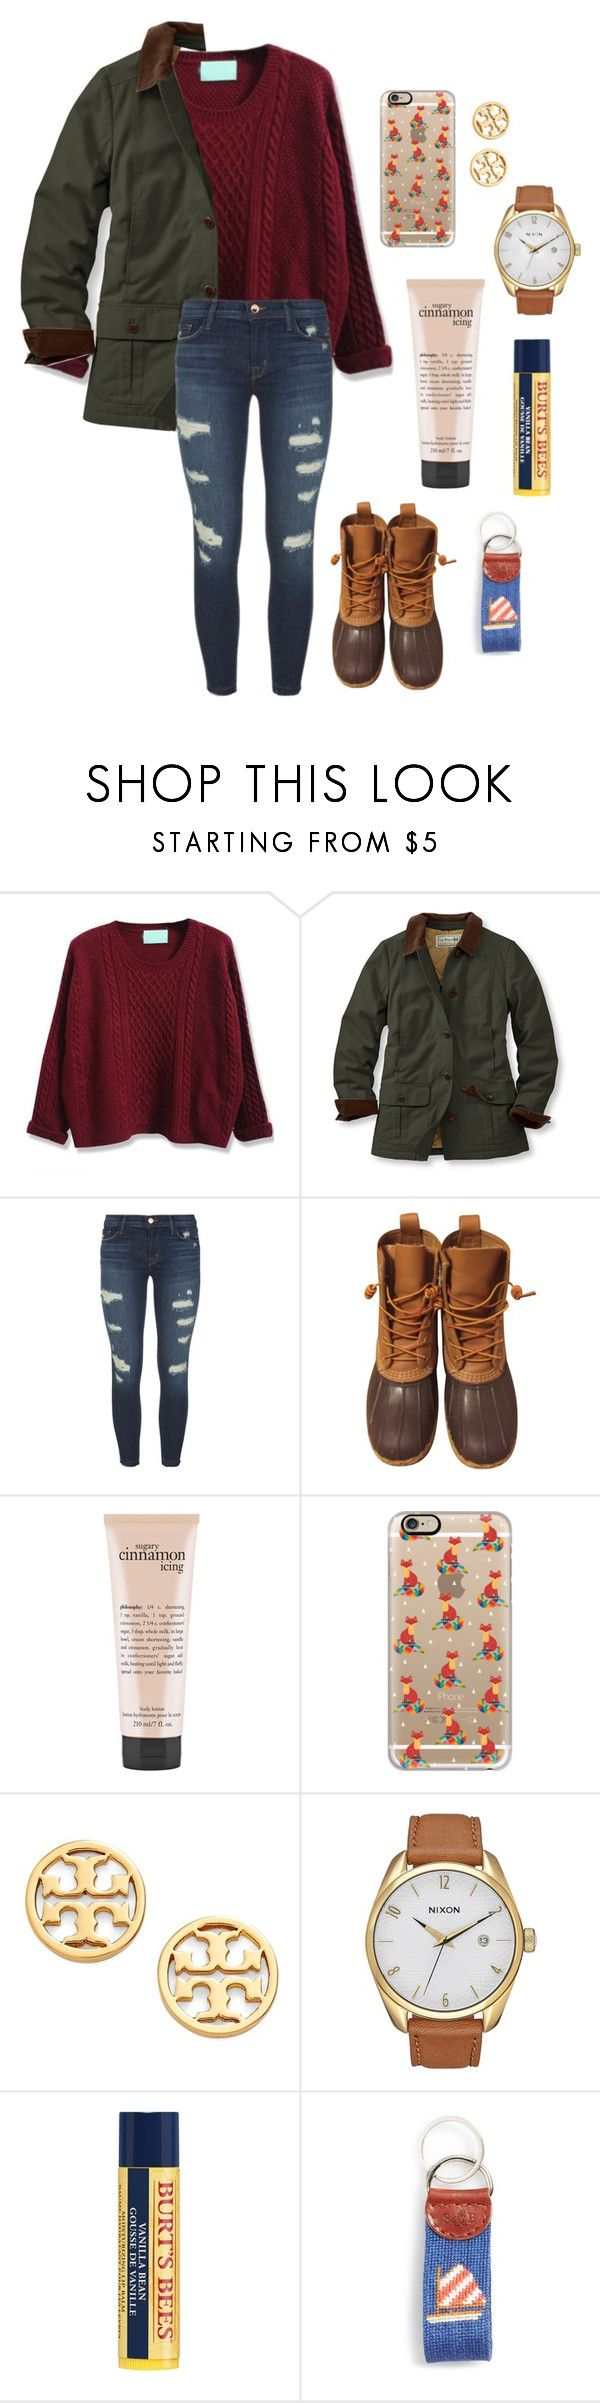 """Heading to school but its very warm??"" by southern-belle02 ❤ liked on Polyvore featuring L.L.Bean, J Brand, philosophy, Casetify, Tory Burch, Nixon, Burt's Bees and Smathers & Branson"